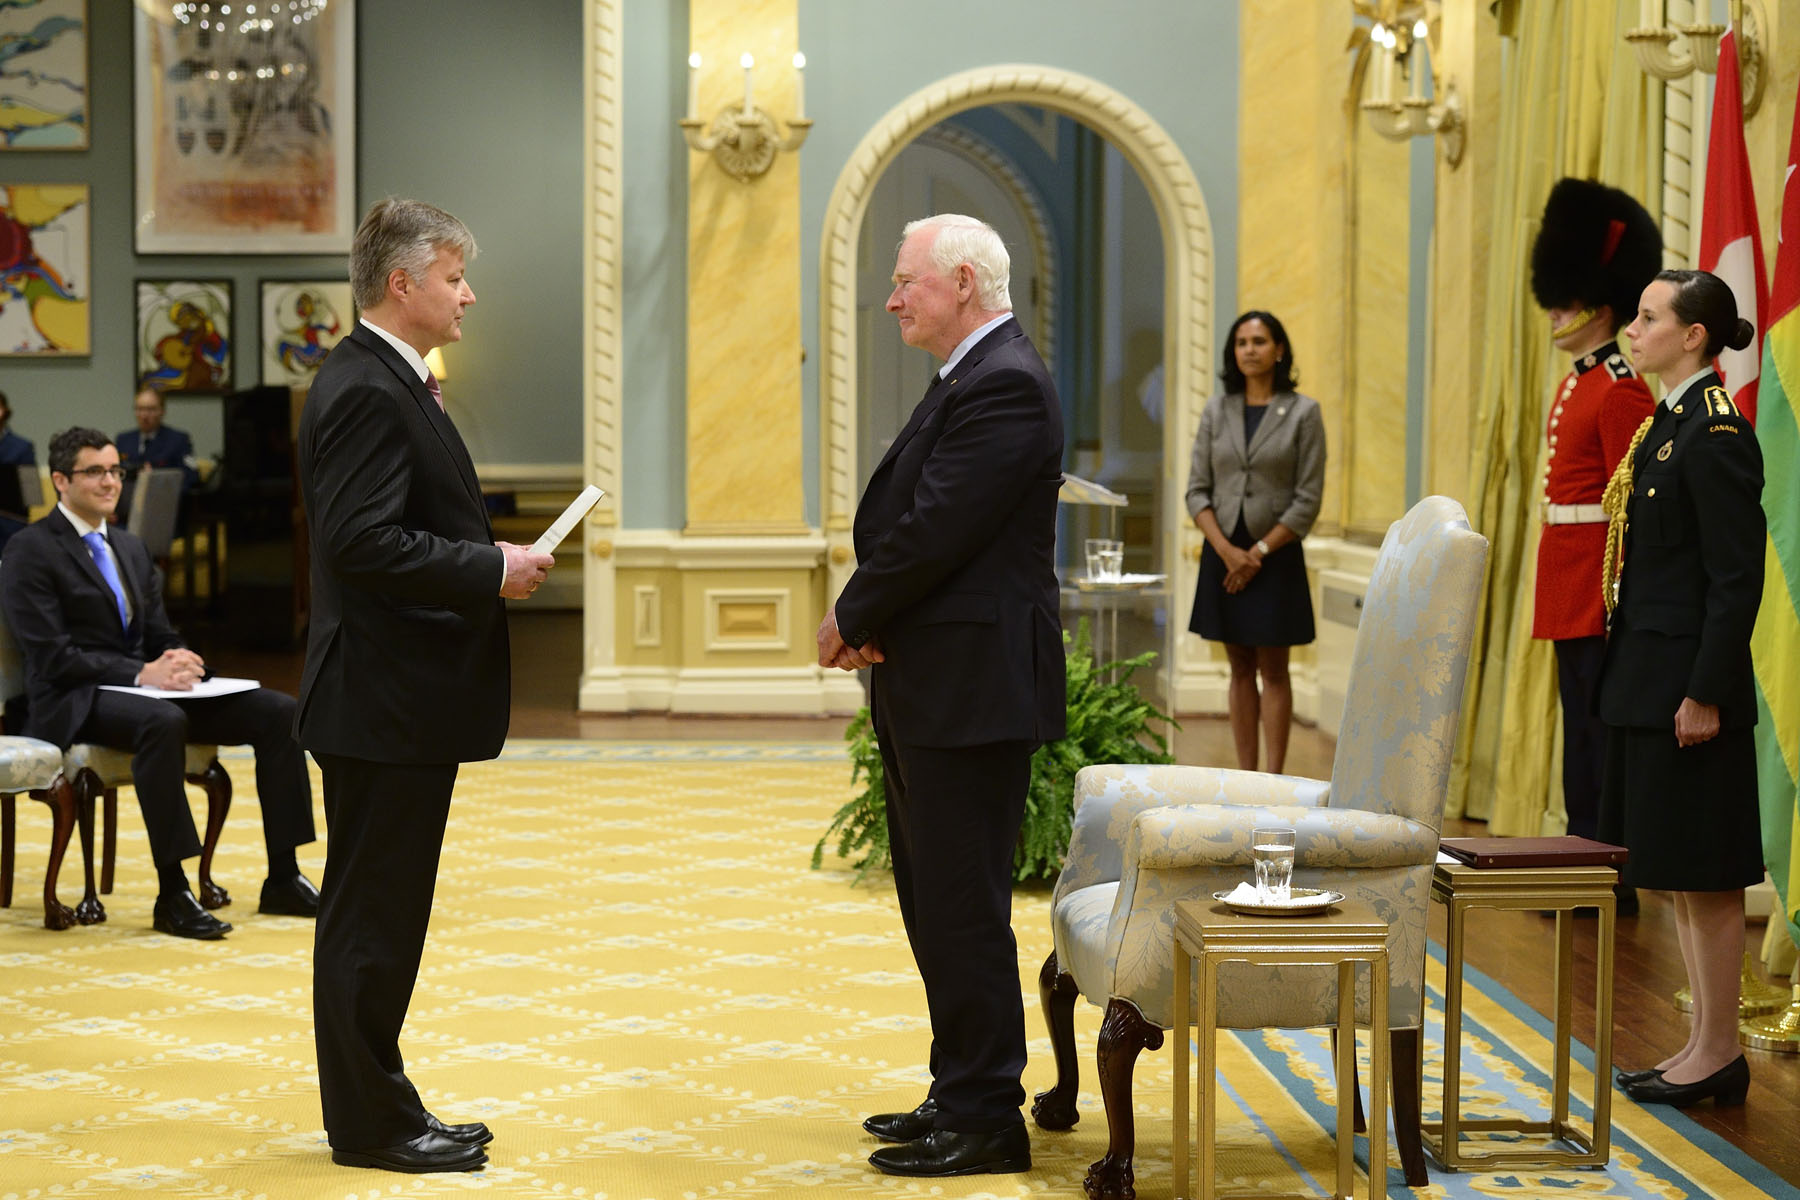 Next His Excellency Karlis Eihenbaums, Ambassador of the Republic of Latvia presented his letter of credence.